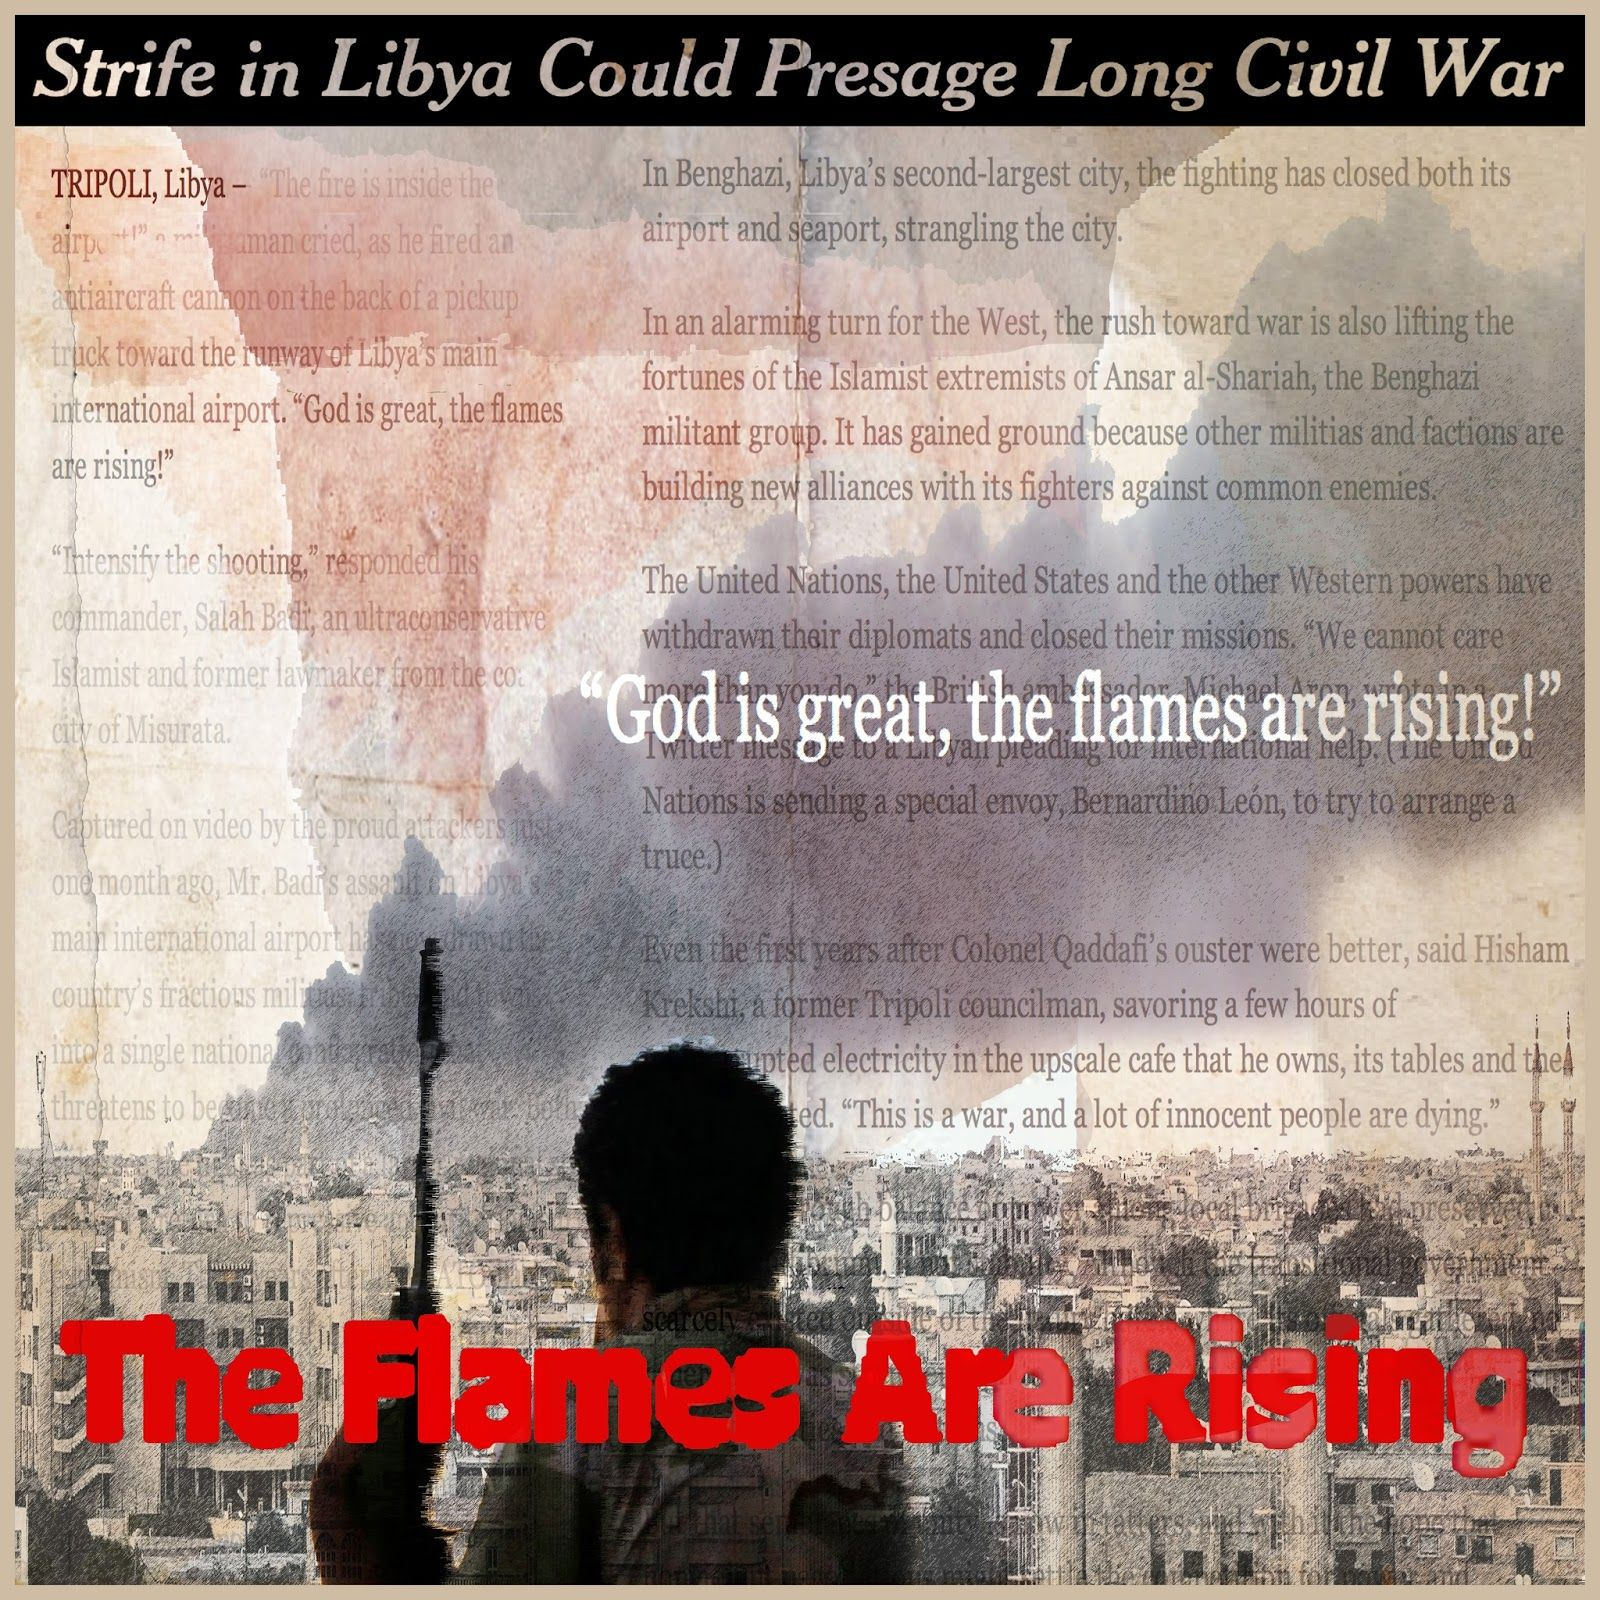 8.25.14 #collage  God is Great The Flames Are Rising  via @nytimes  #Libya #arsted